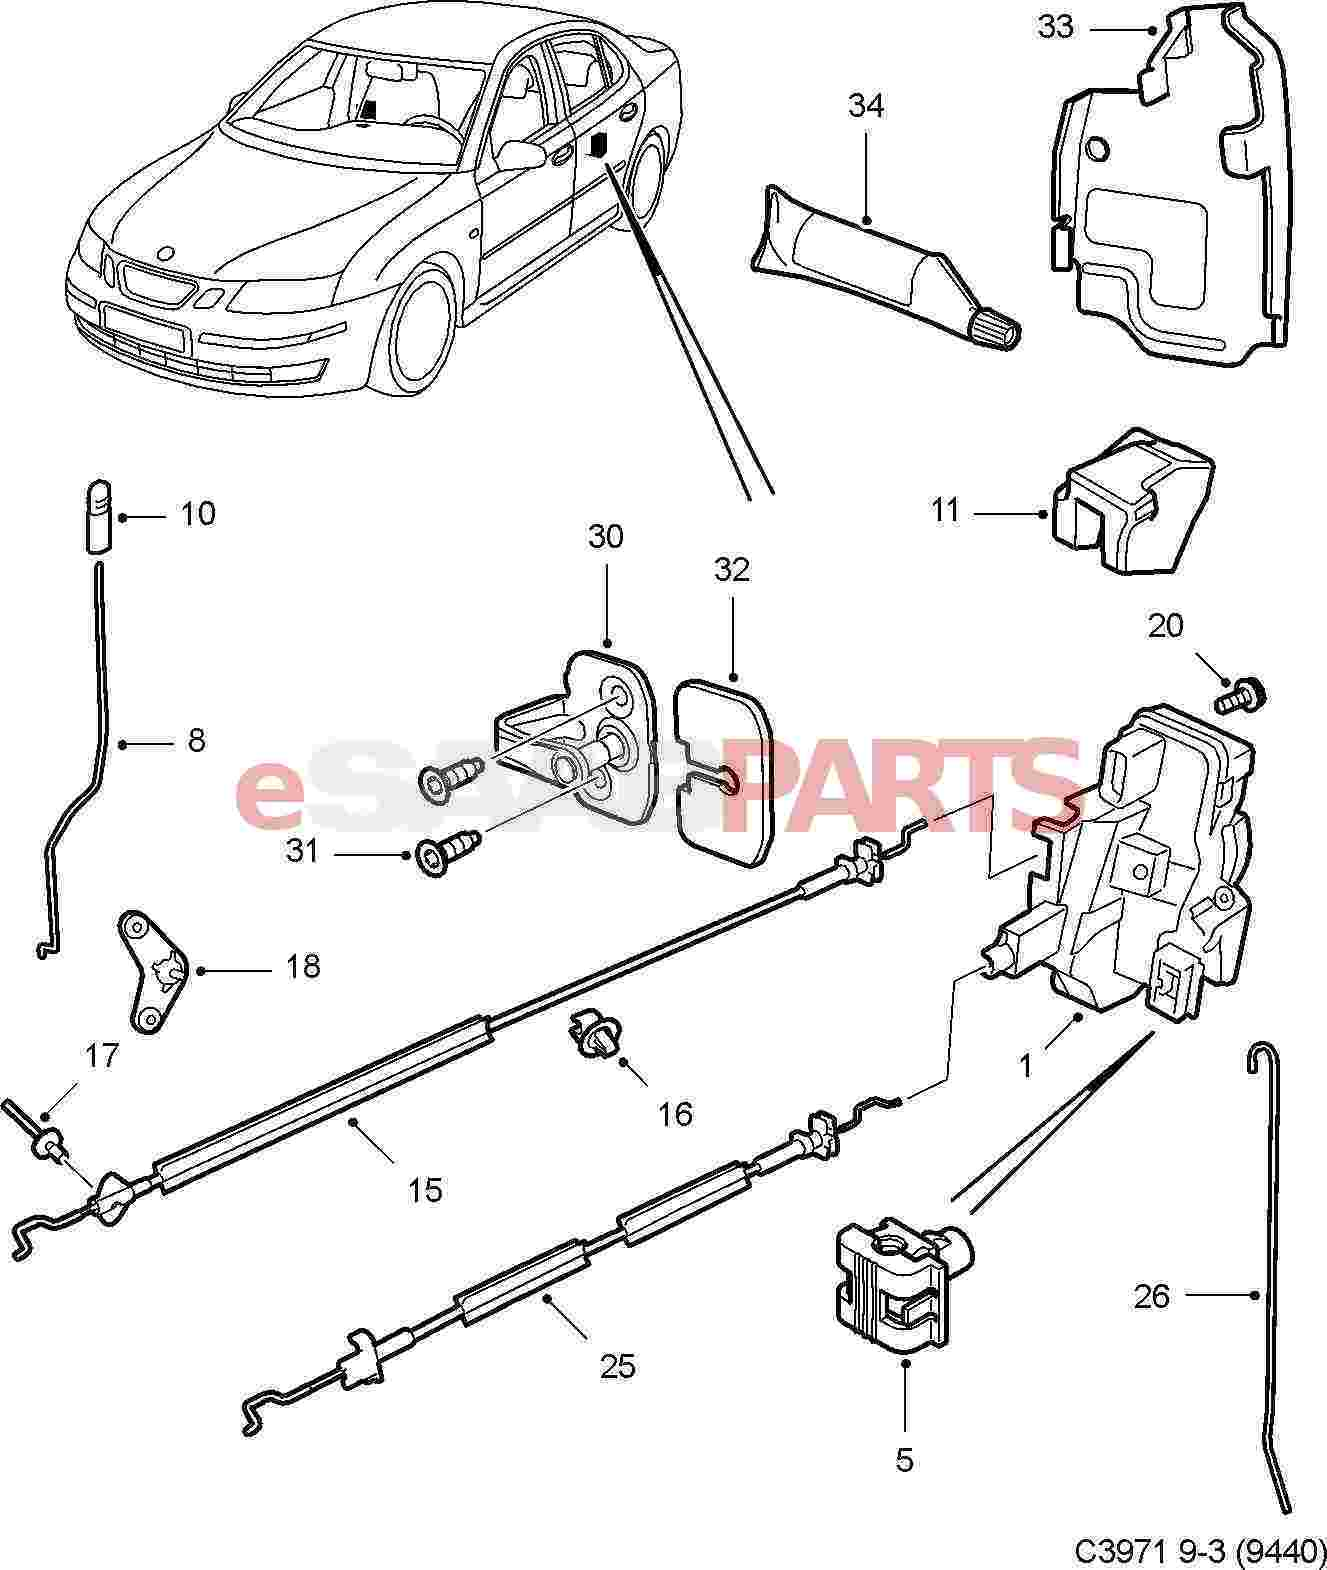 12803481 saab door lock genuine saab parts from esaabparts com rh esaabparts com Saab Parts 1999 Saab 9 3 Amplifier Wiring